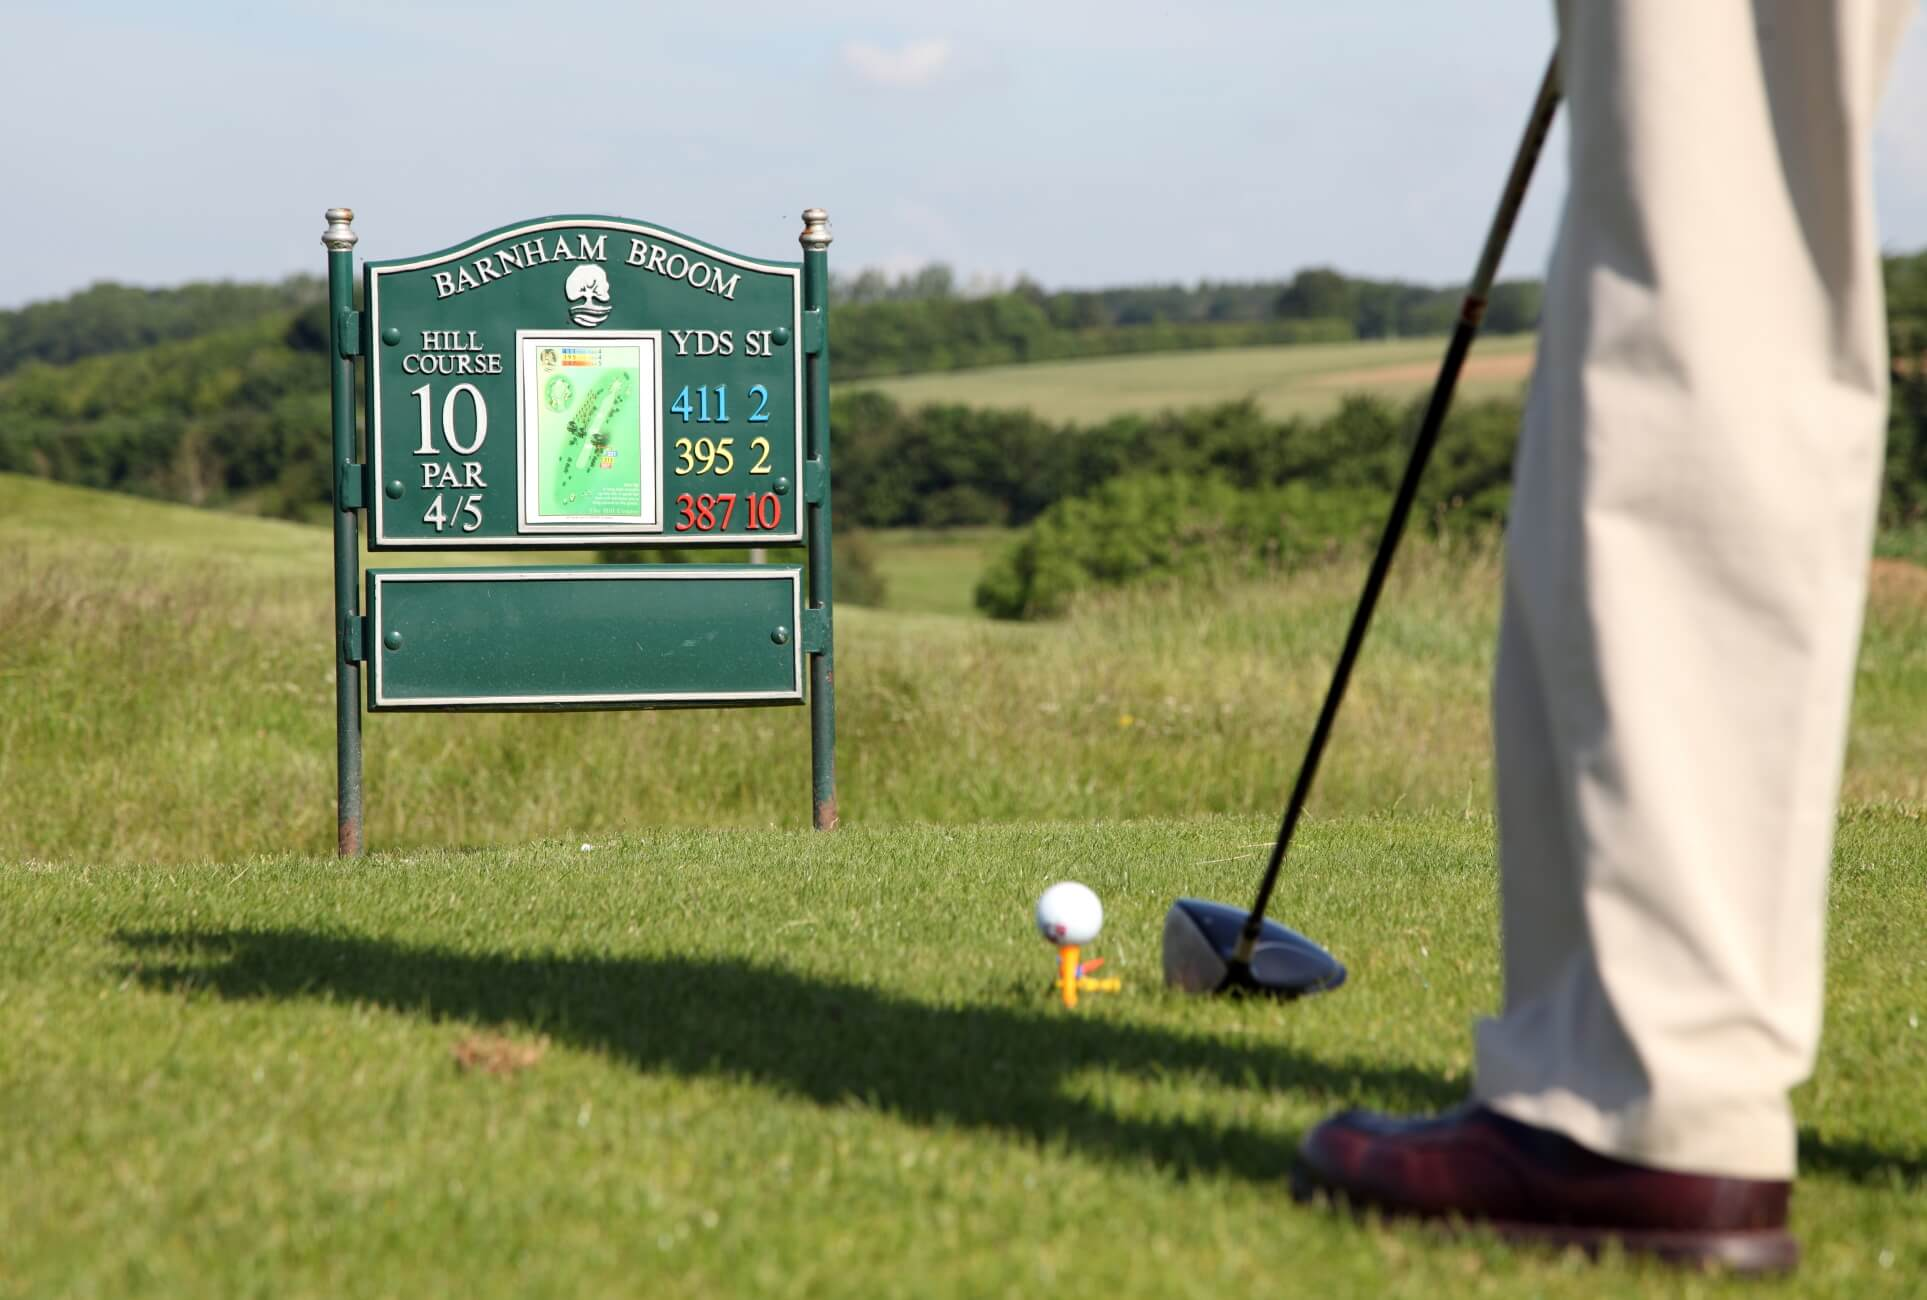 Hill-Course-10th-Tee